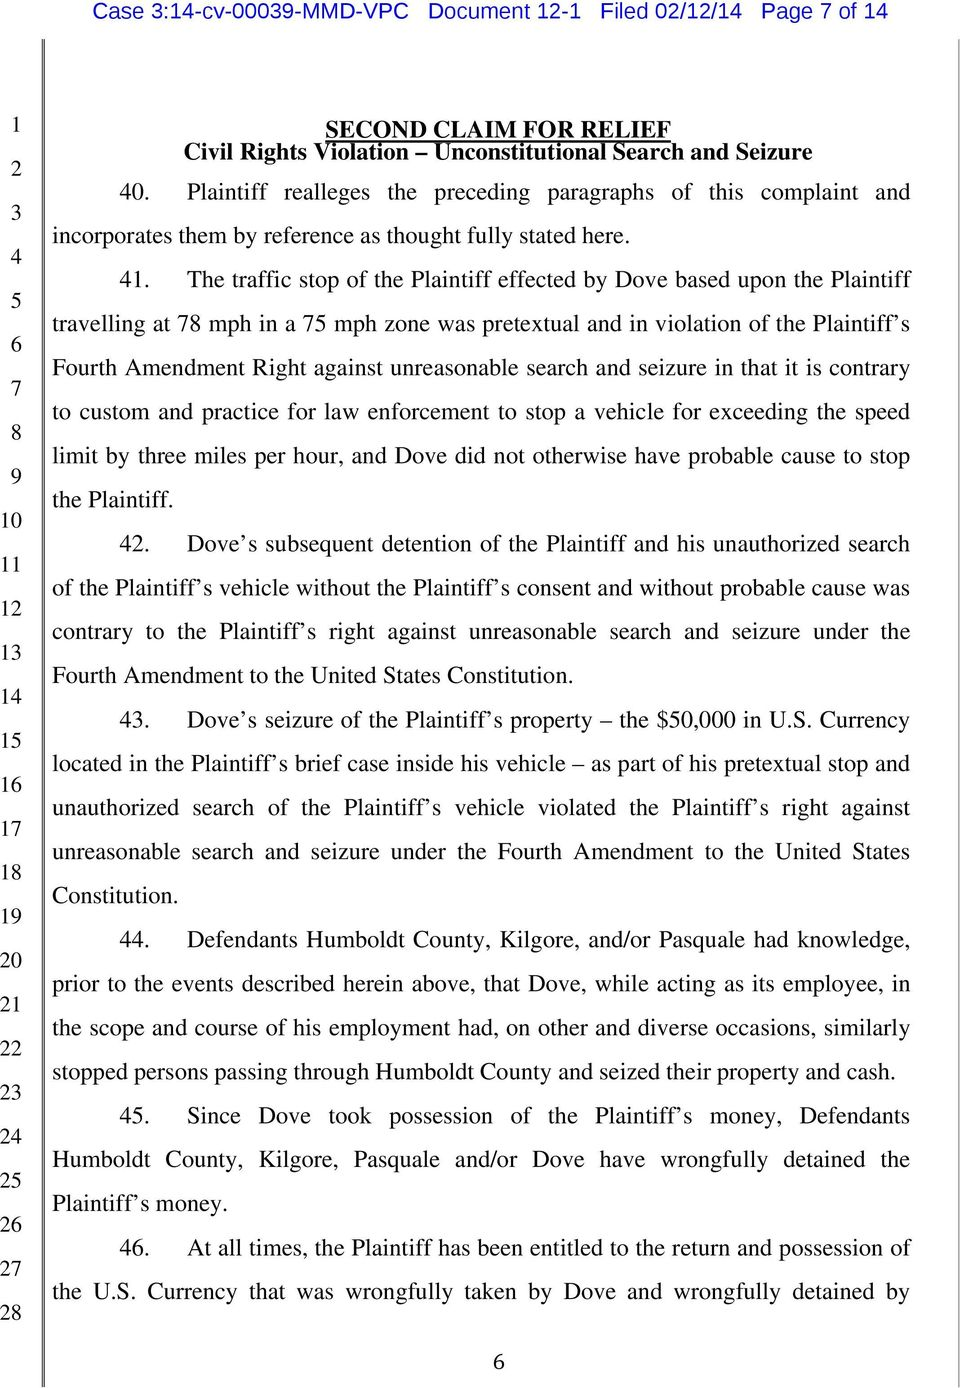 . The traffic stop of the Plaintiff effected by Dove based upon the Plaintiff travelling at mph in a mph zone was pretextual and in violation of the Plaintiff s Fourth Amendment Right against